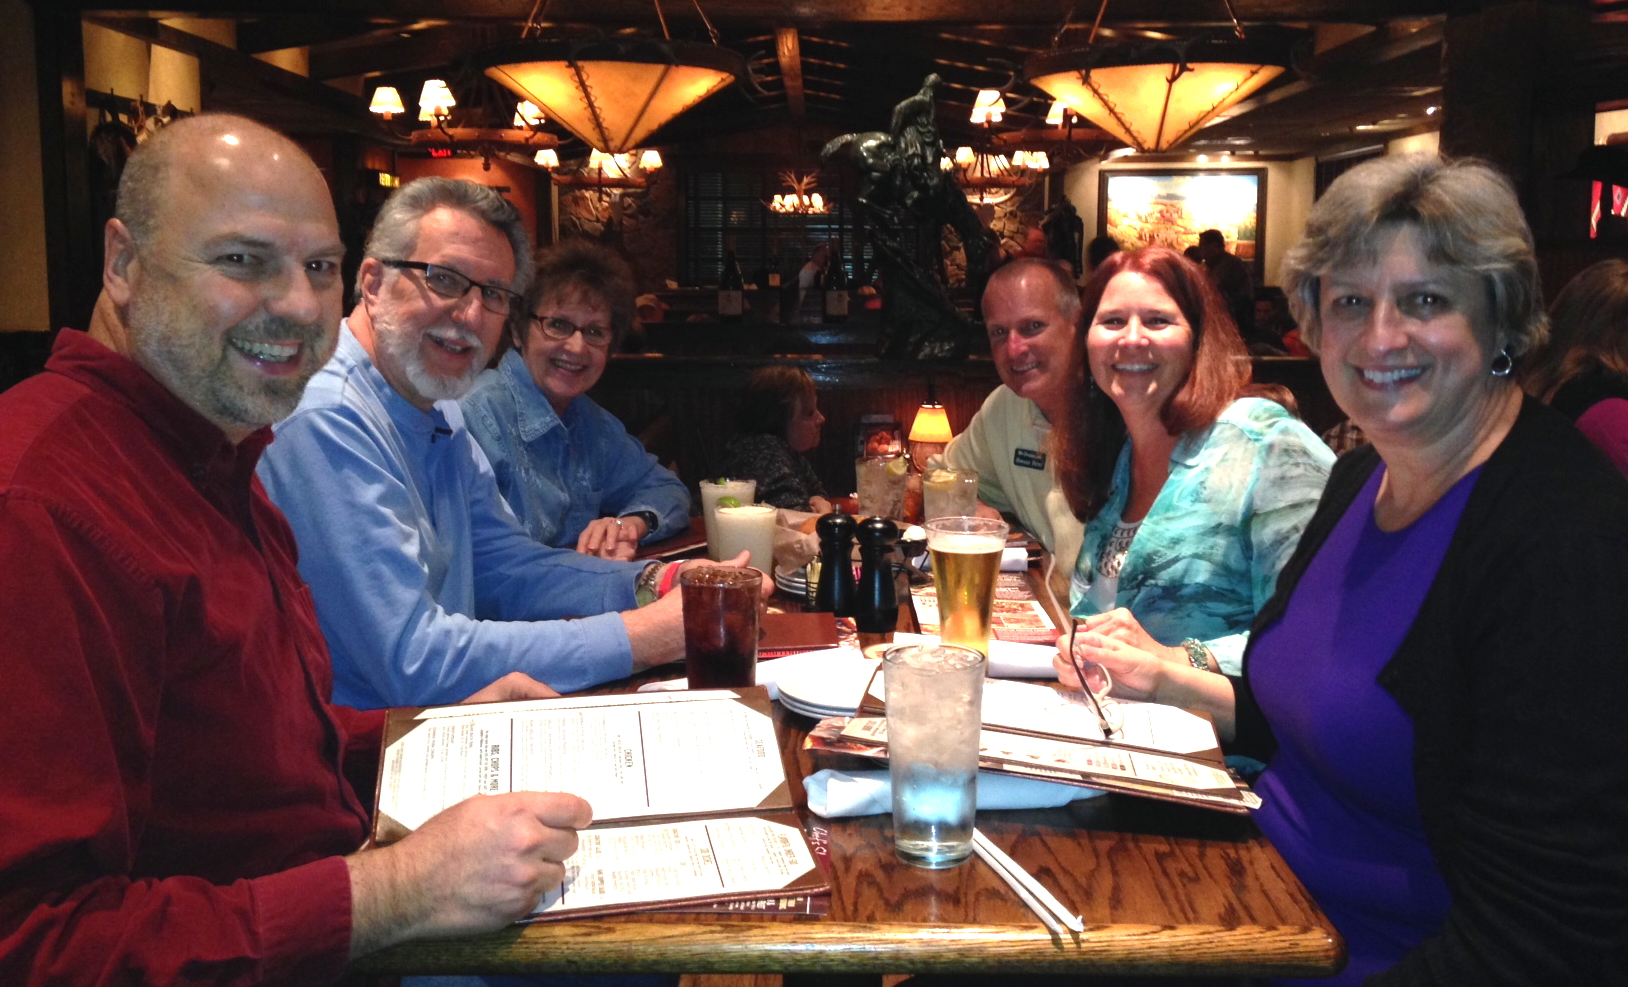 Dinner tonight at Longhorn Steakhouse in Pigeon Forge, TN - Nancy and I, Ken and Faye H and Howard and Linda P.